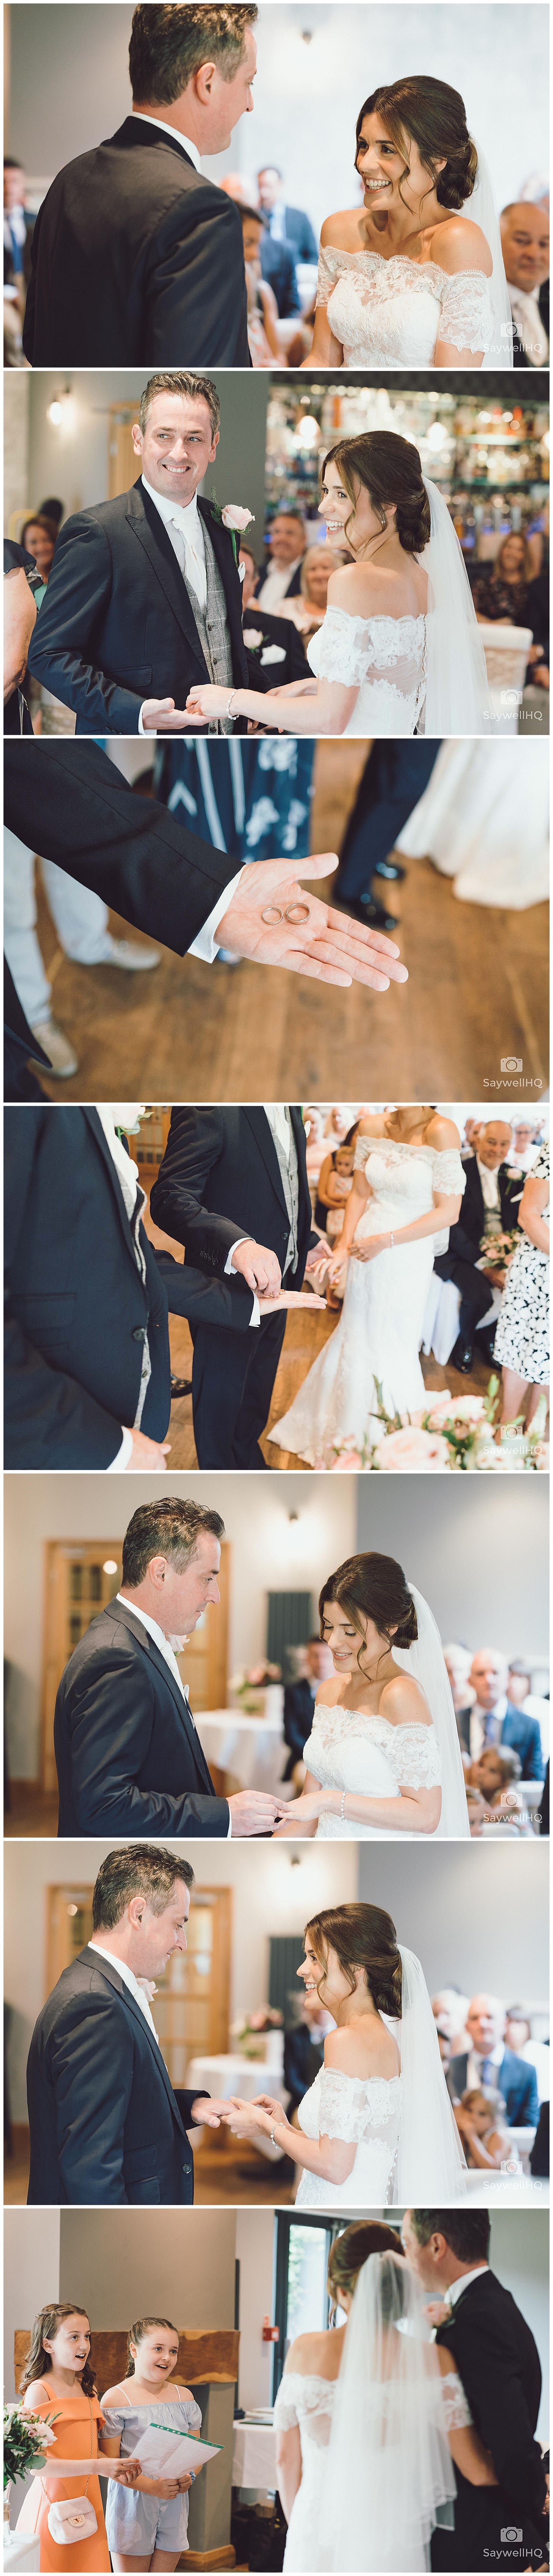 The Chequers Inn Woolsthorpe Wedding Photography - bride and groom kiss and sign the wedding register